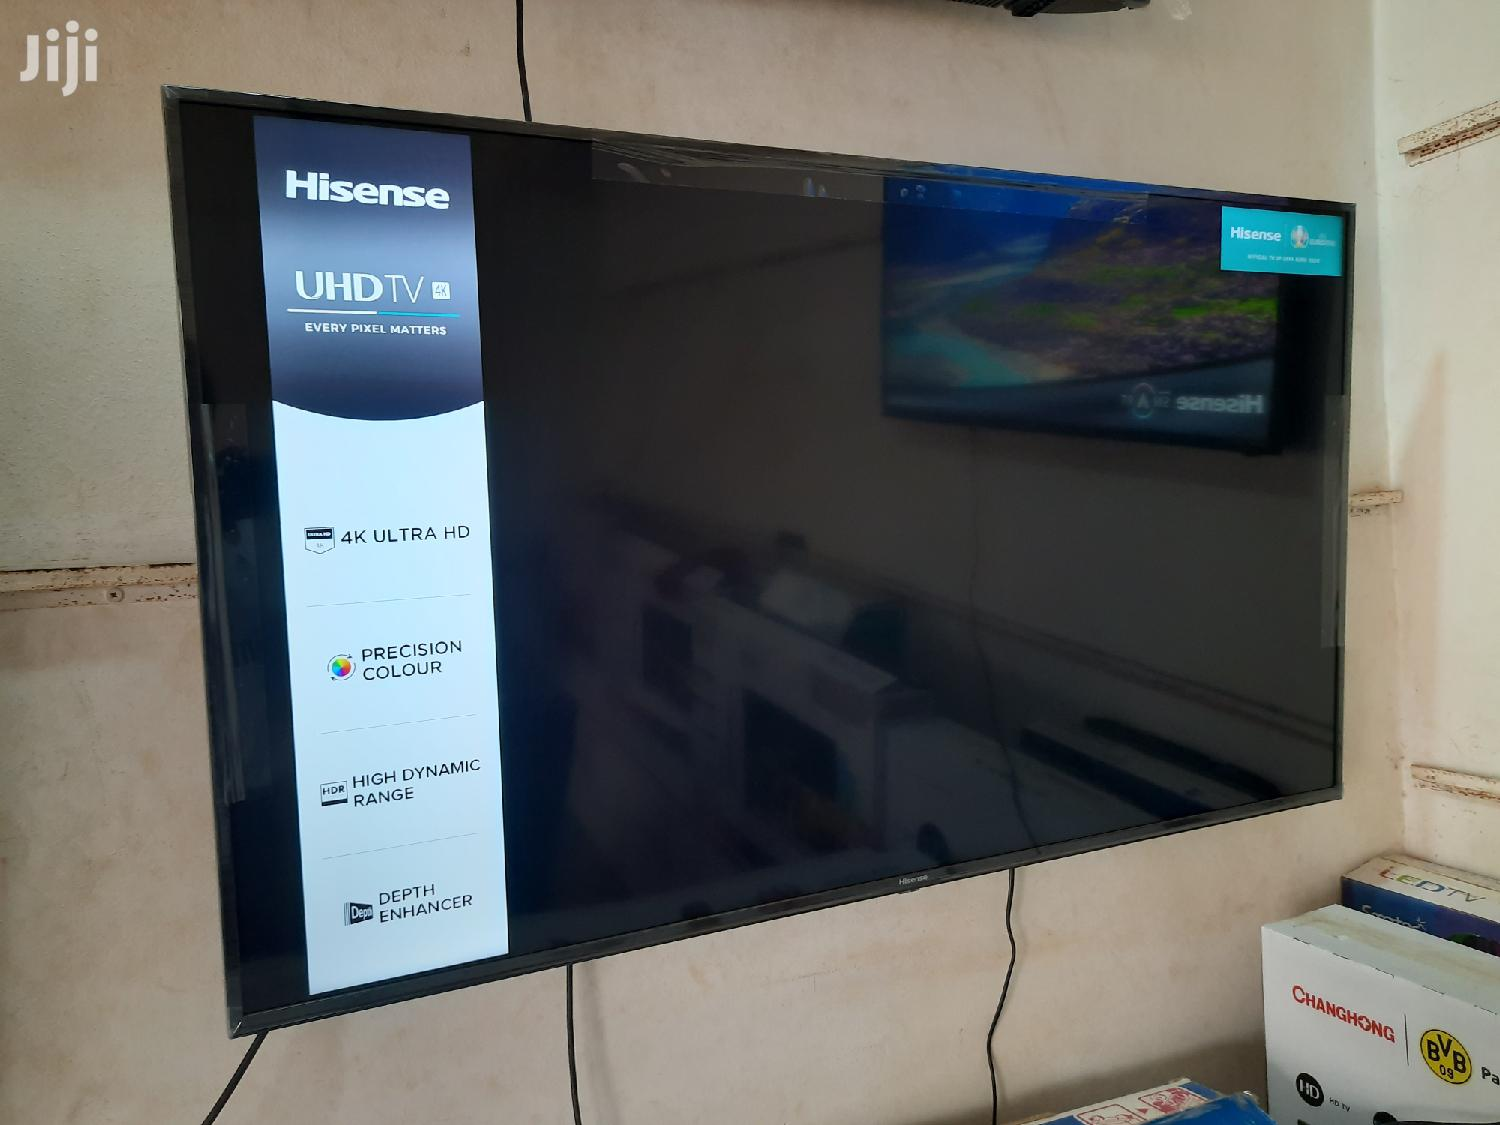 Brand New Hisense 55-Inch UHD 4K Smart TV